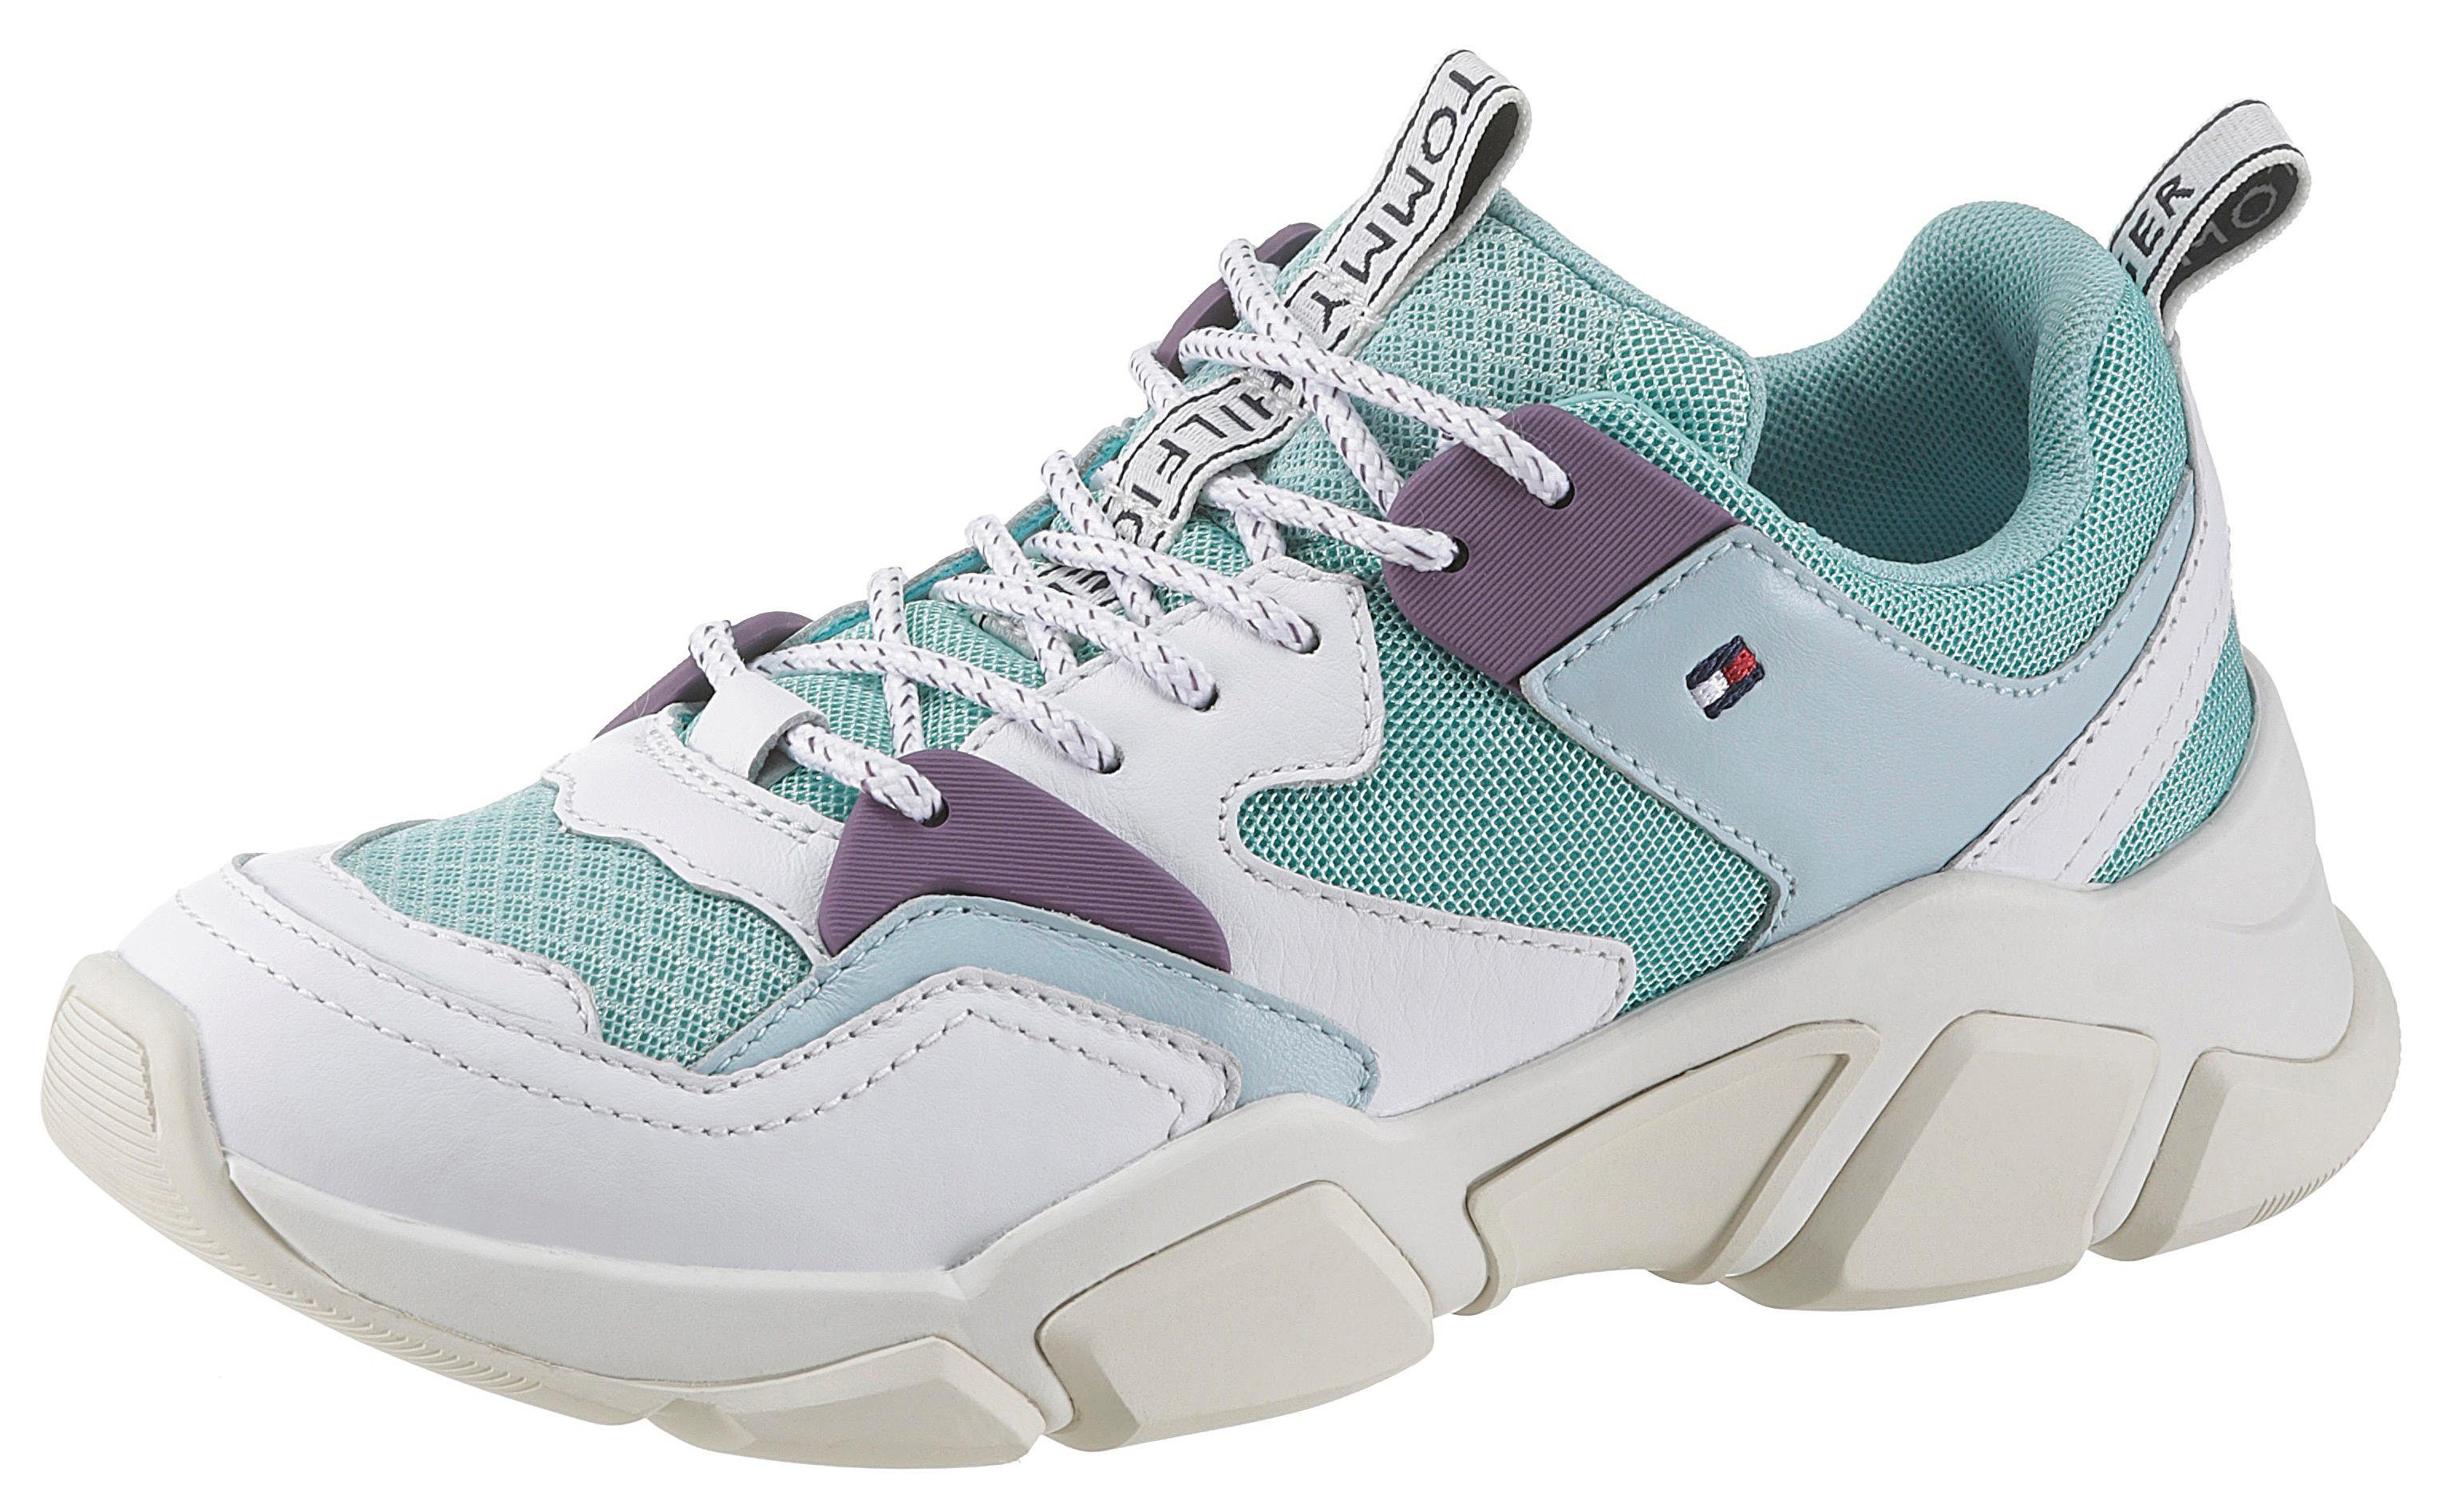 TOMMY HILFIGER »WMNS BILLY IC« Keilsneaker in toller Farbkombination